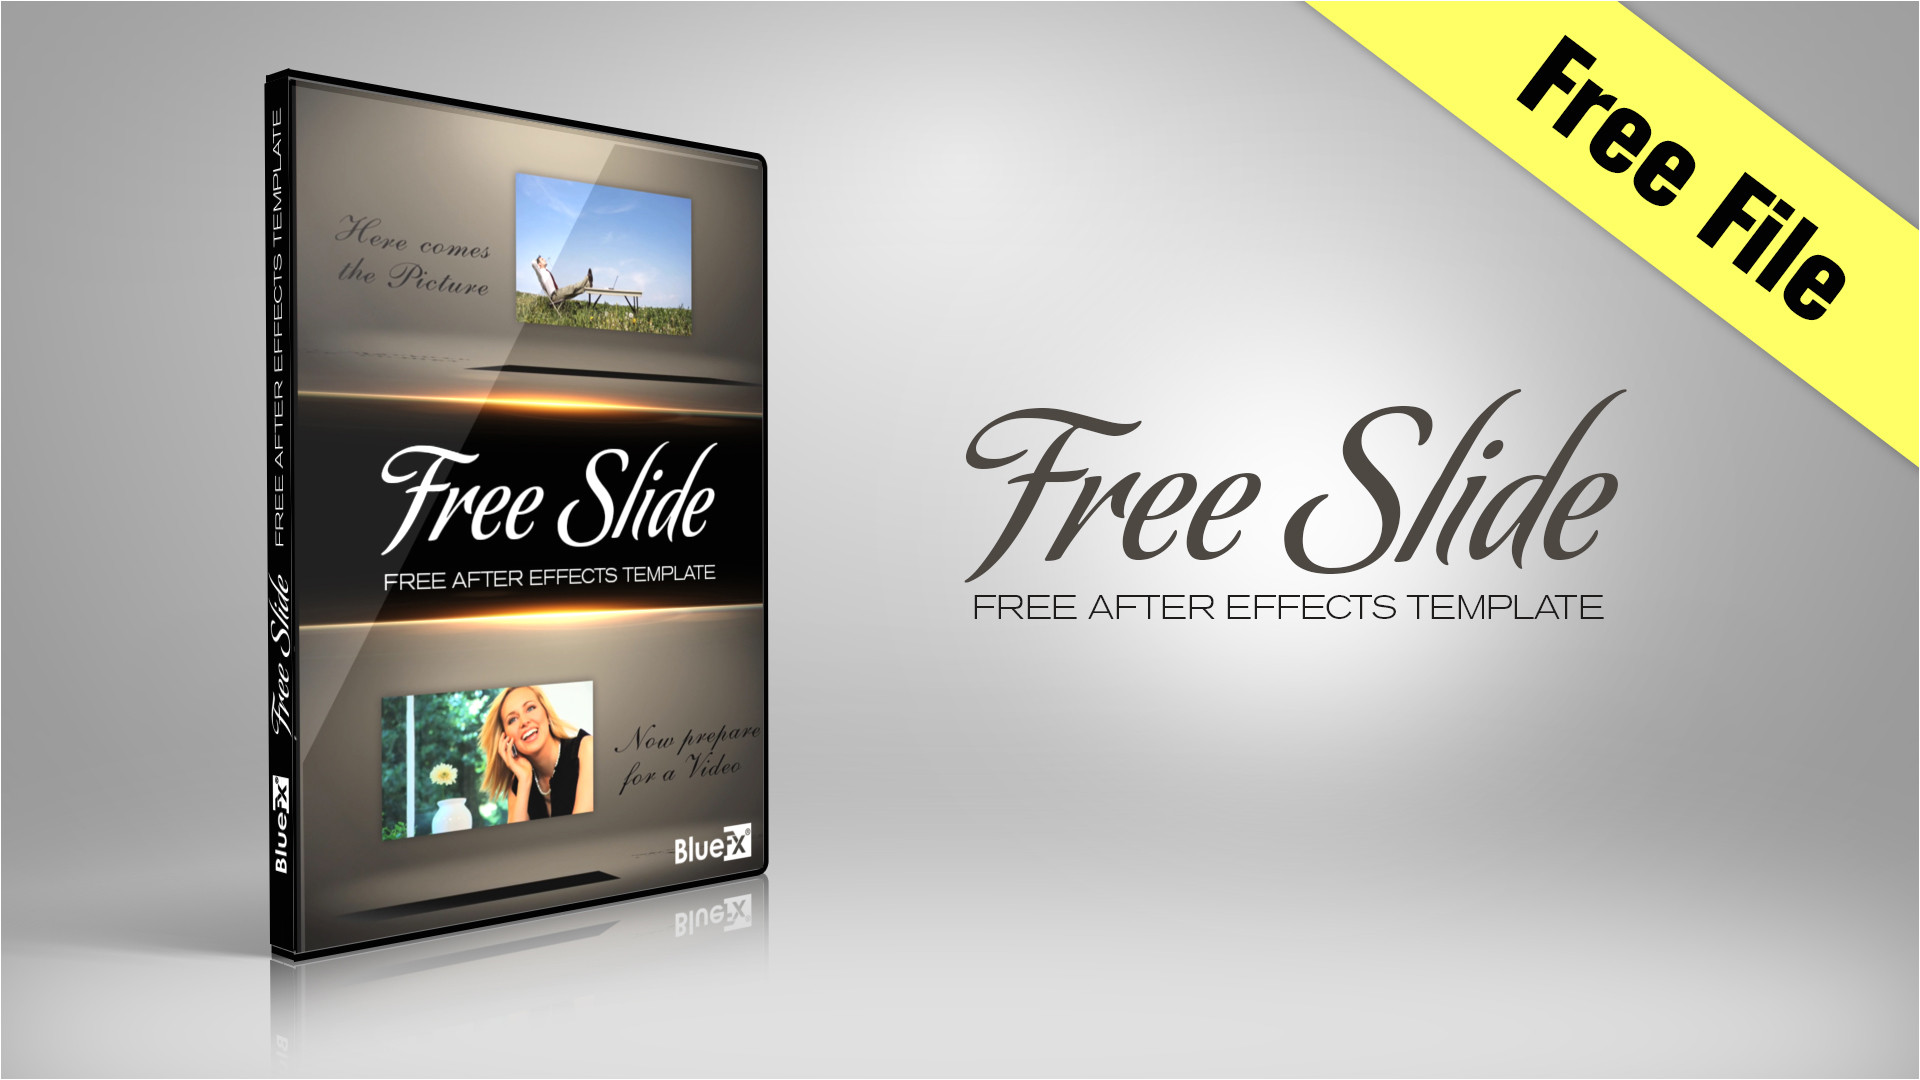 freeslide free after effects template